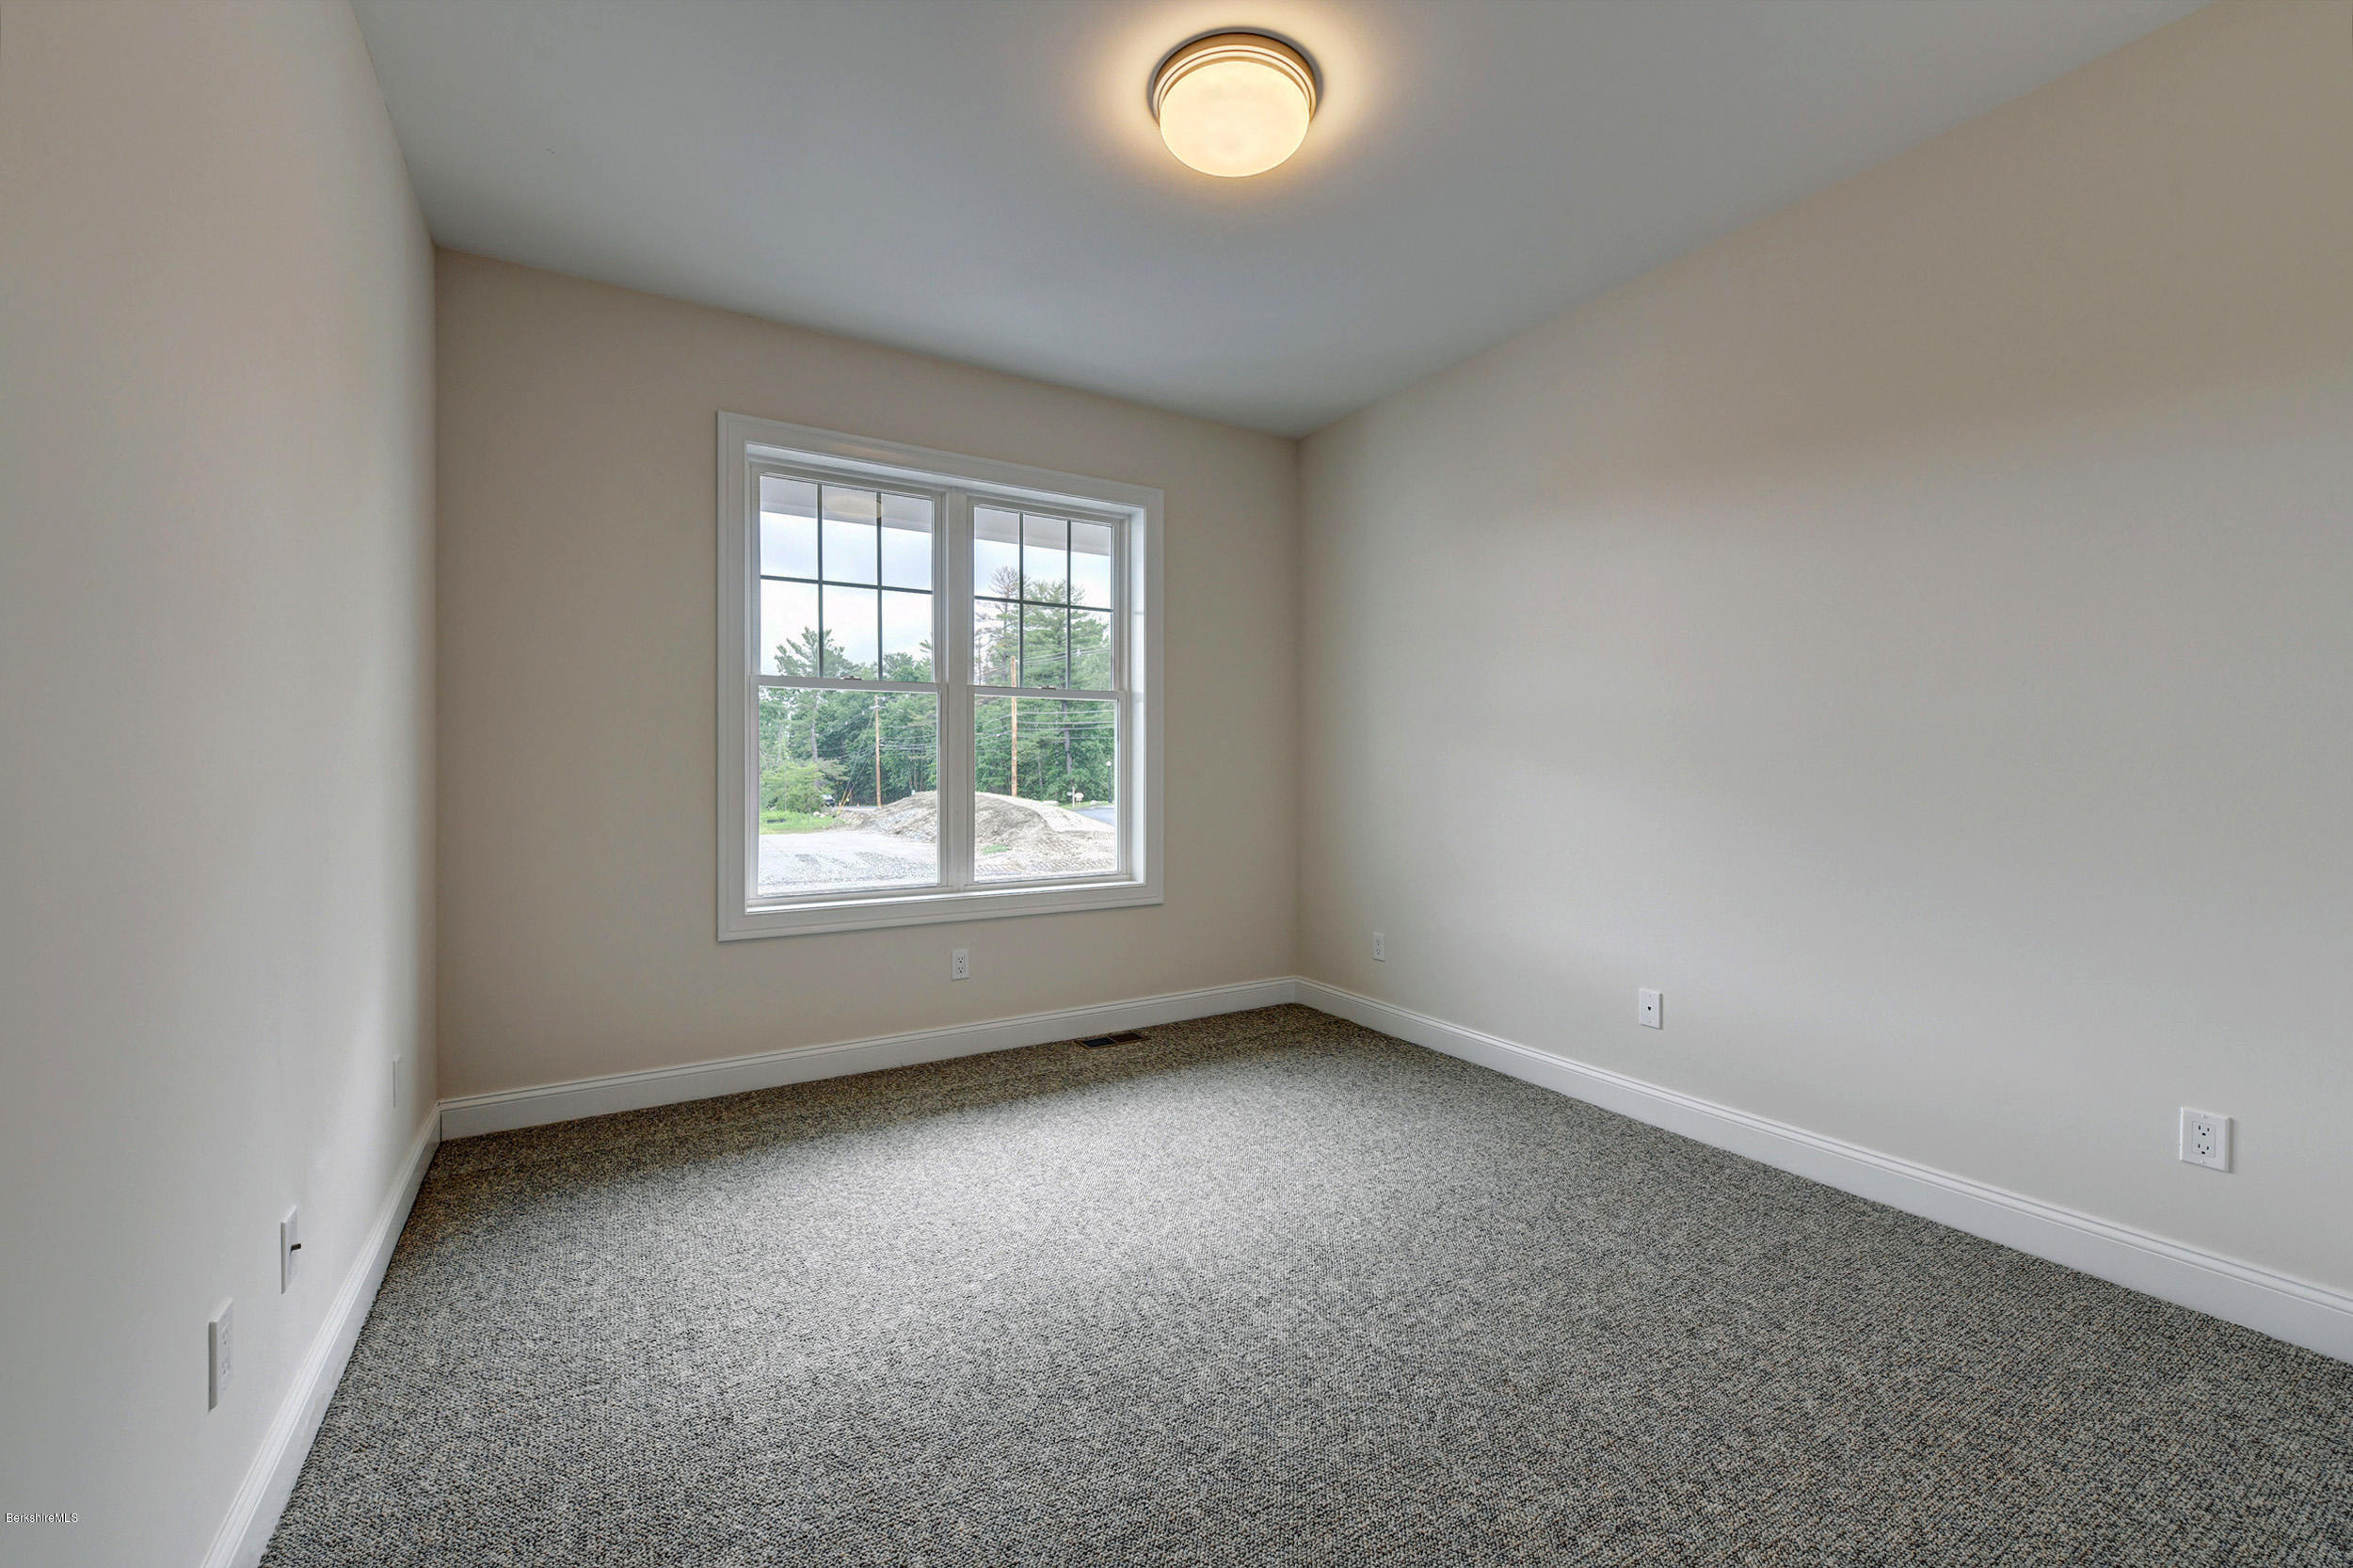 Property located at 241 Walker #2 St Lenox MA 01240 photo